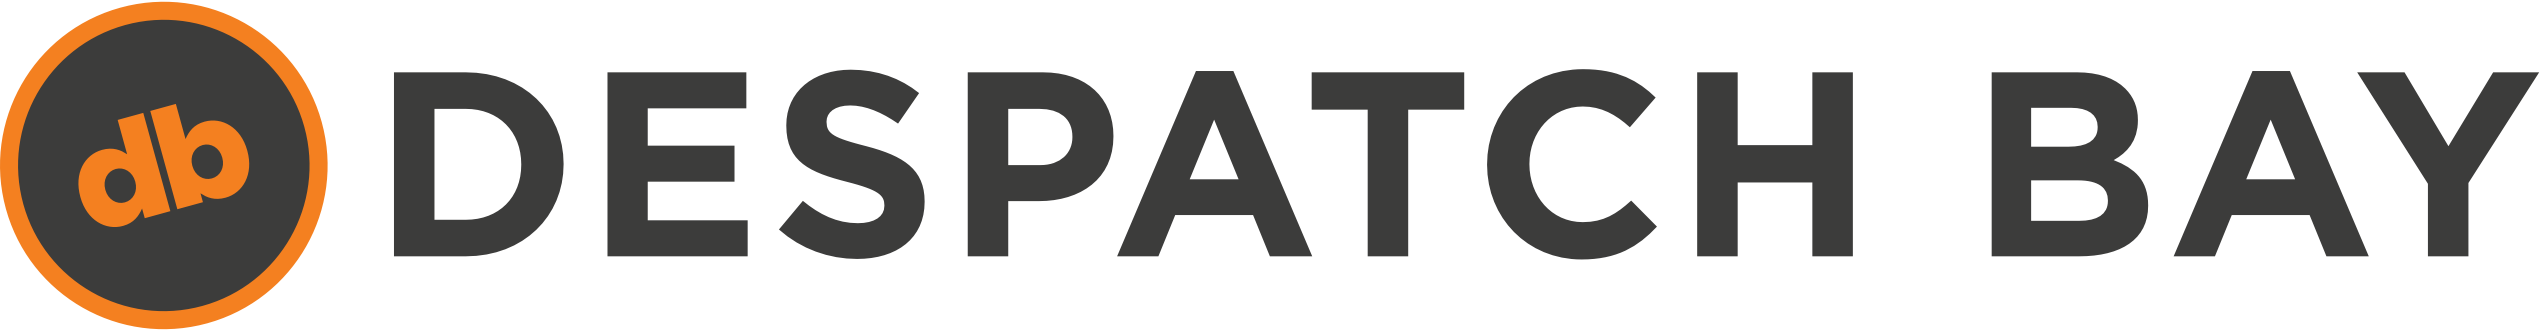 Despatchbay logo